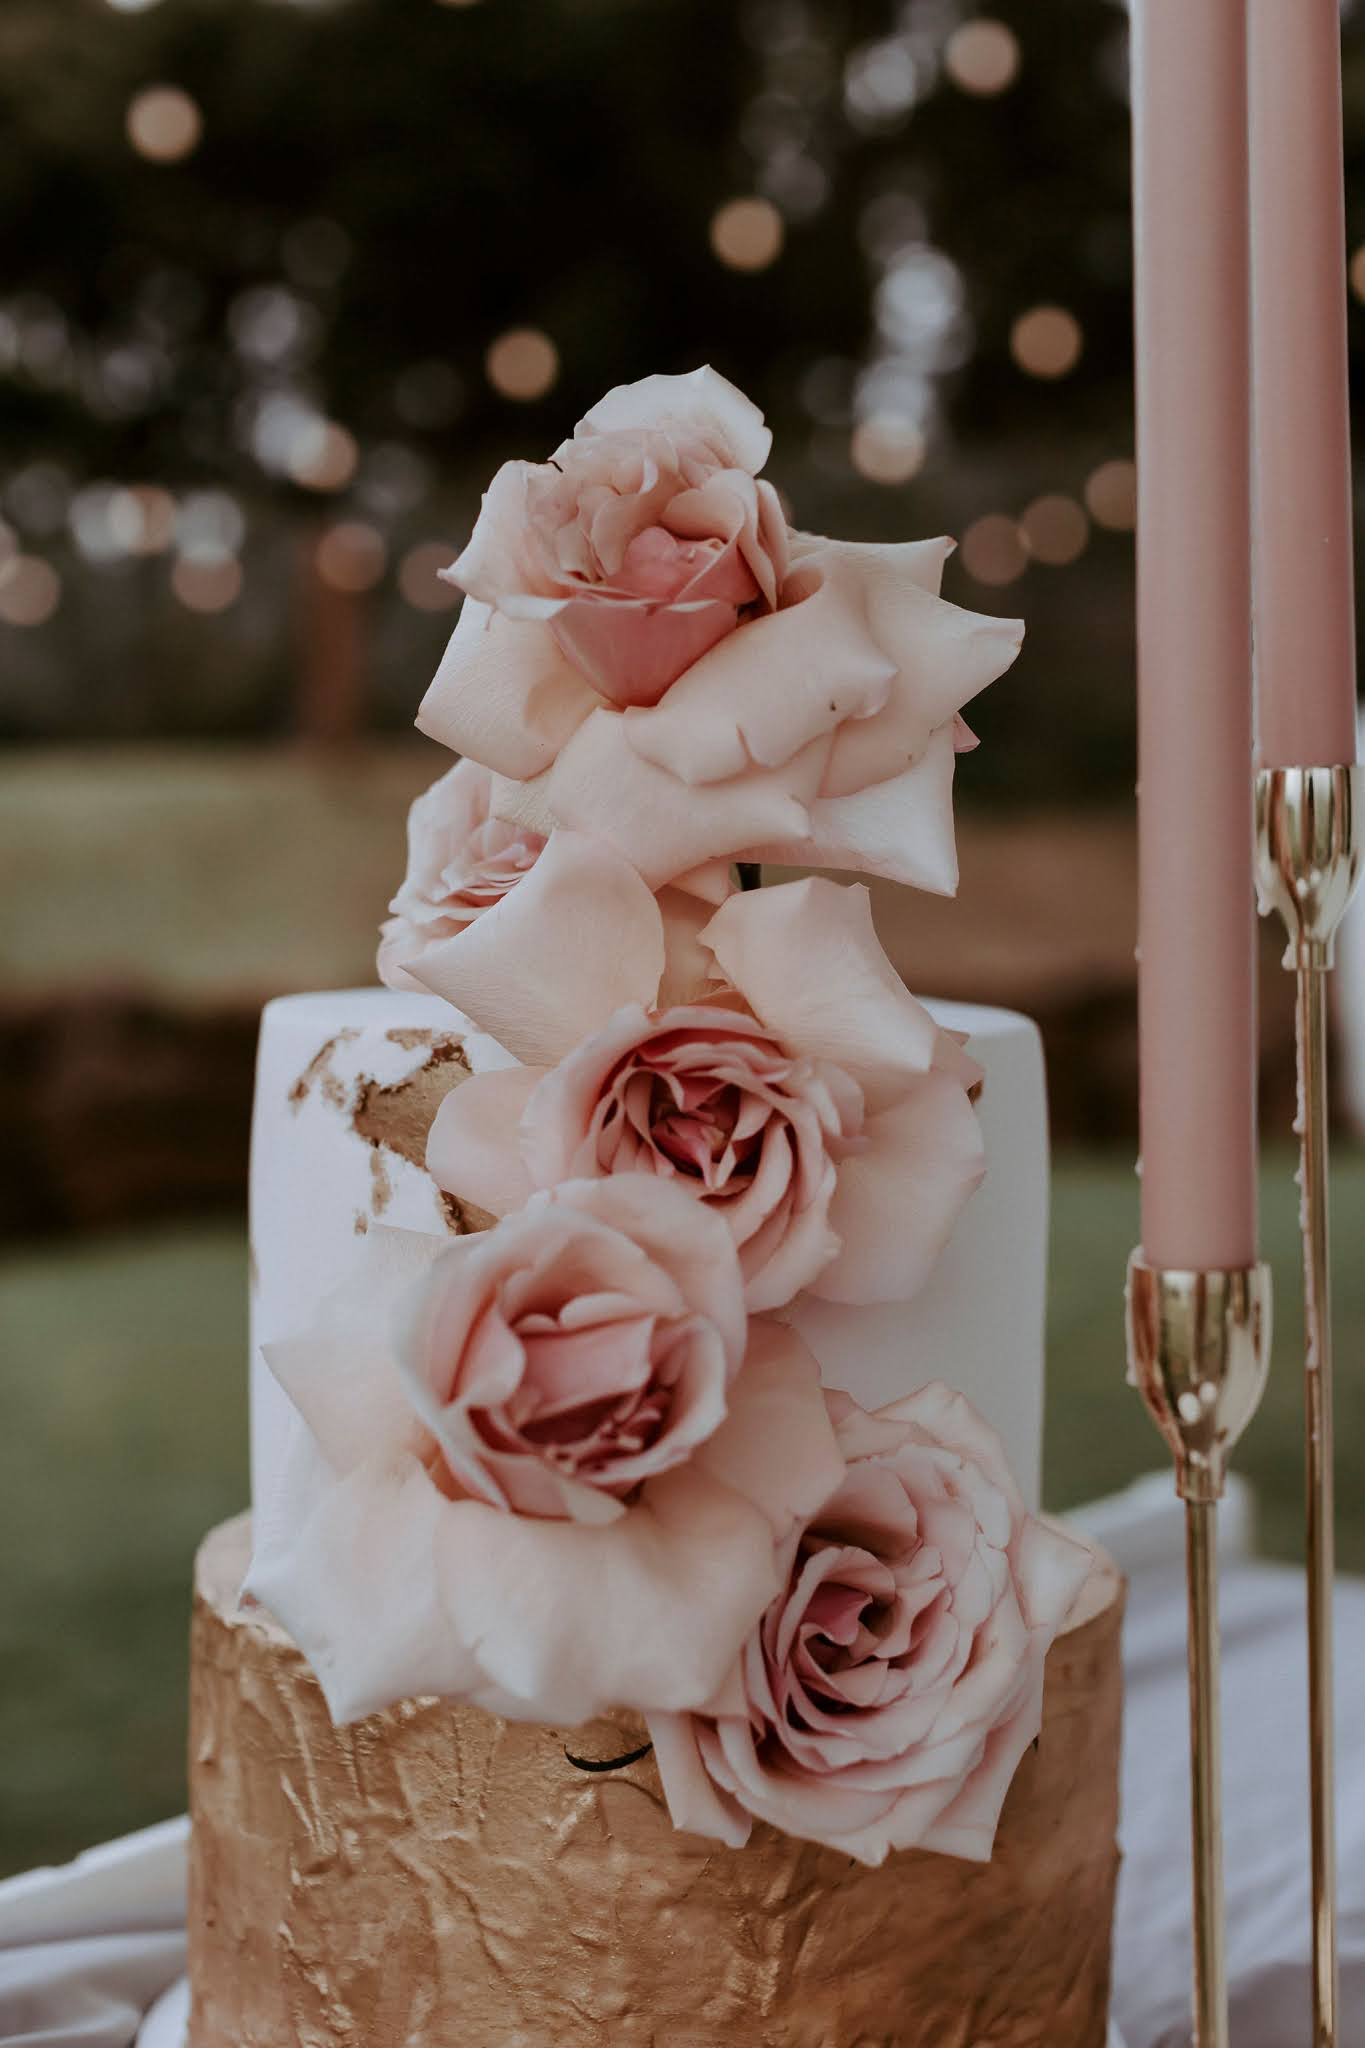 ivory and rose photography gold coast weddings florals cake venue bridal gowns and more